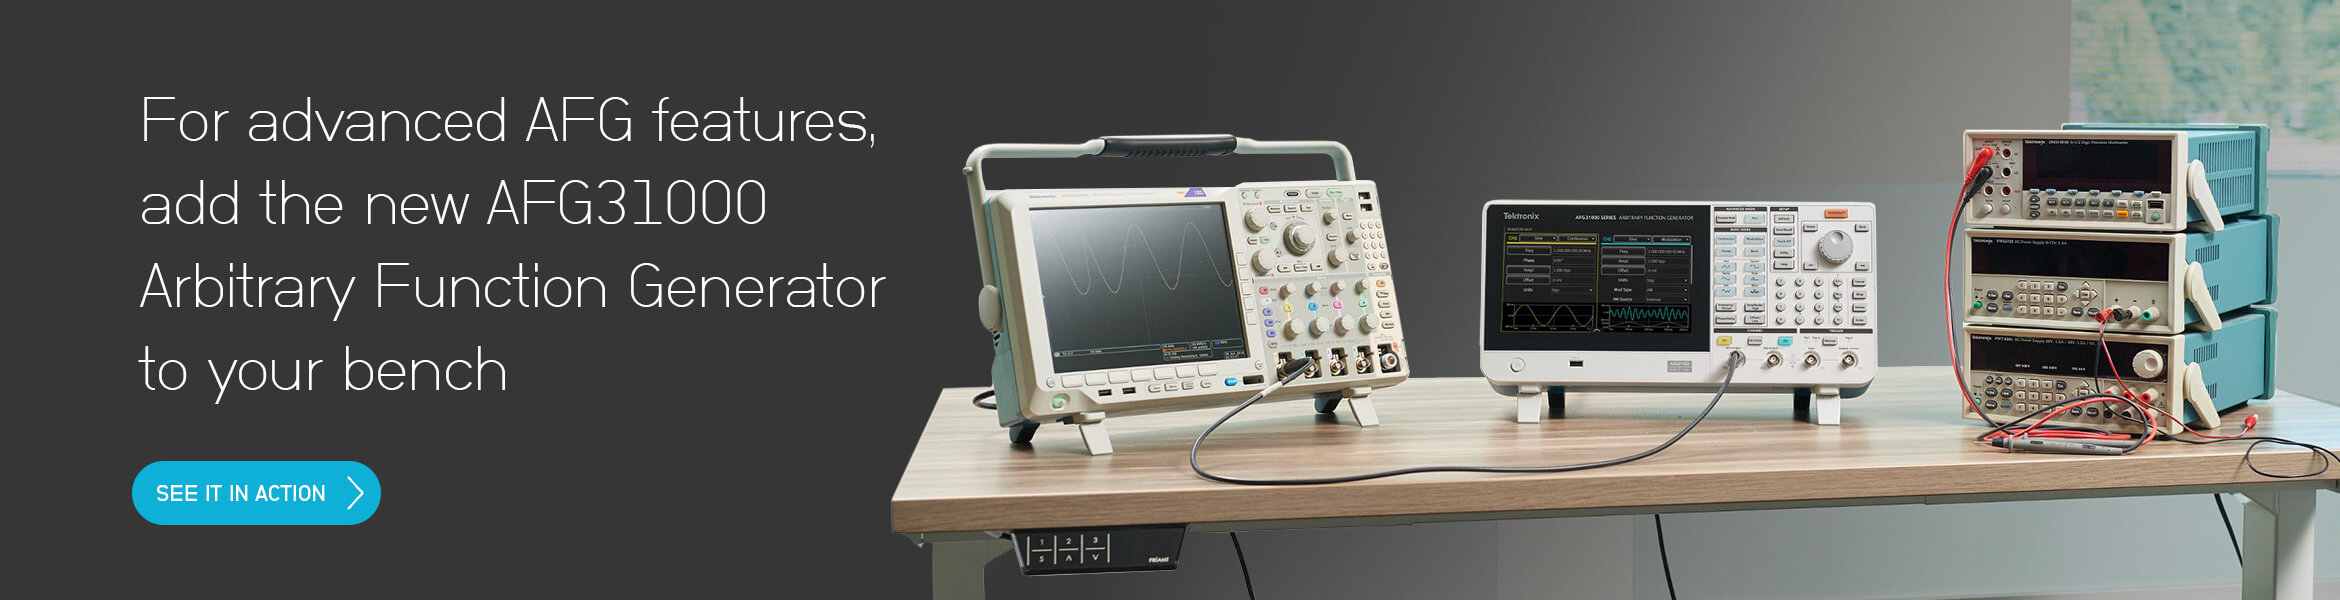 For advanced AFG features, add the new AFG31000 Arbitrary Function Generator tosites